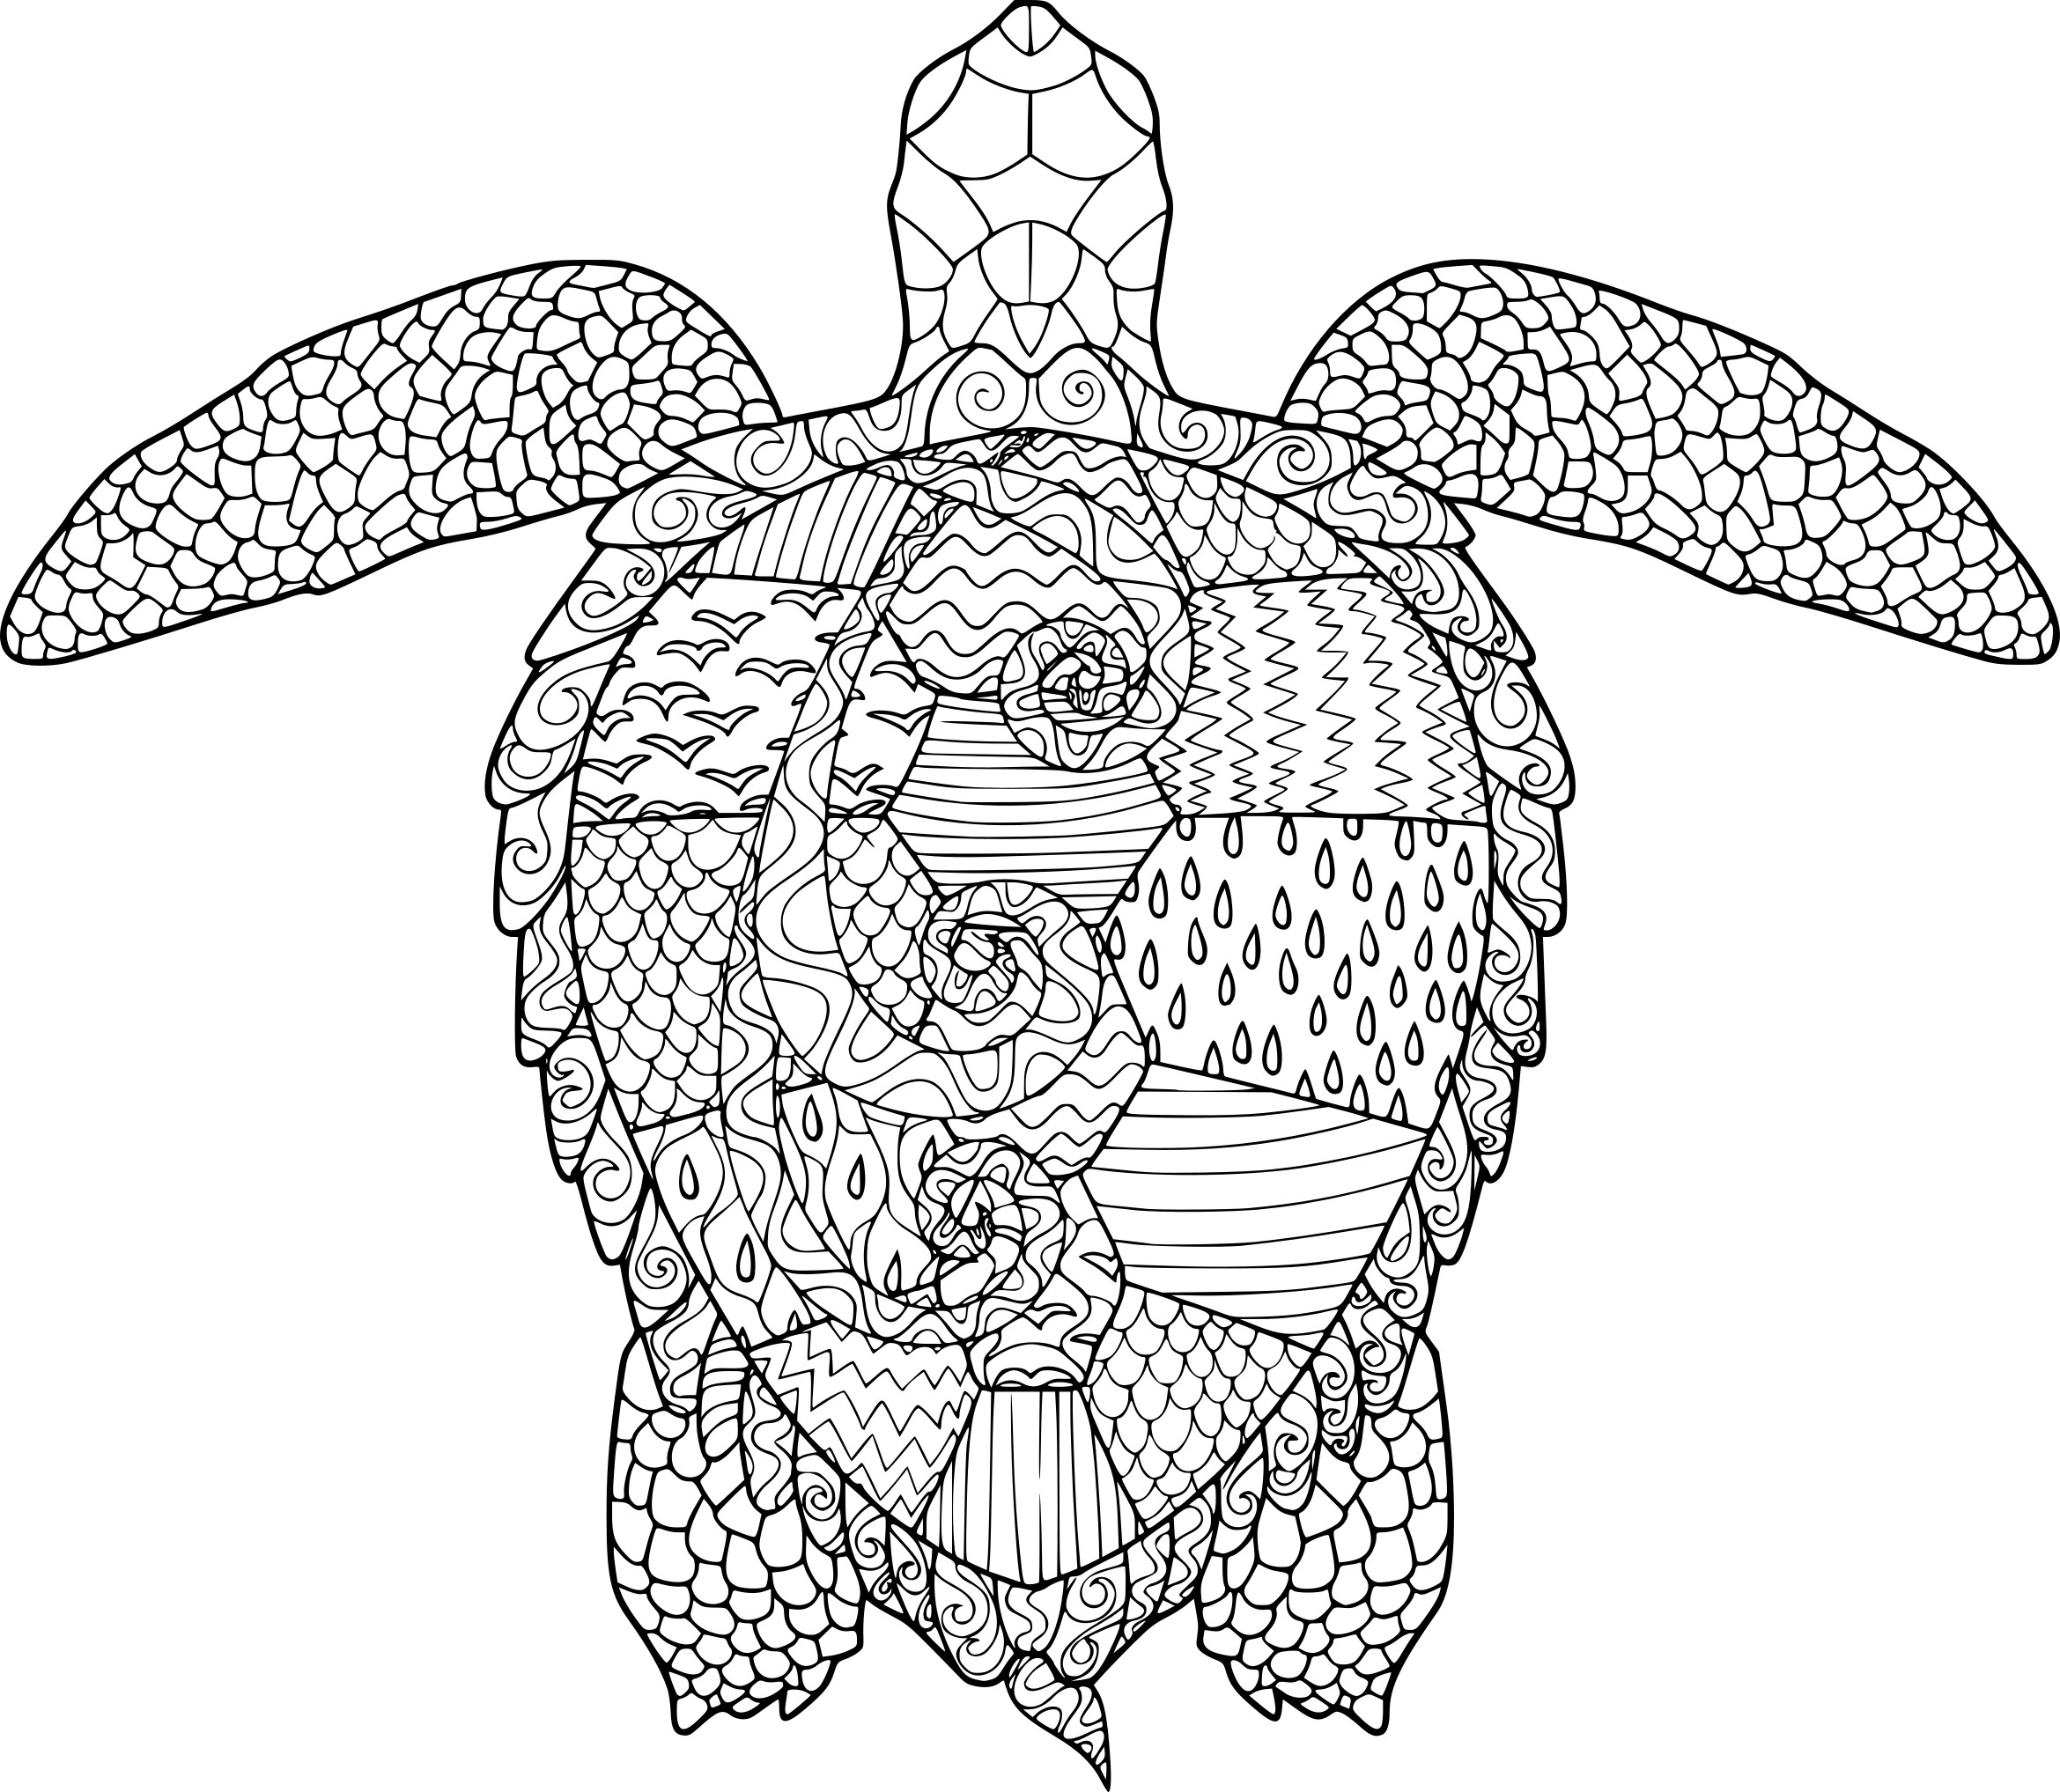 Coloriage anti stress tortue - Coloriage anti stress a imprimer ...